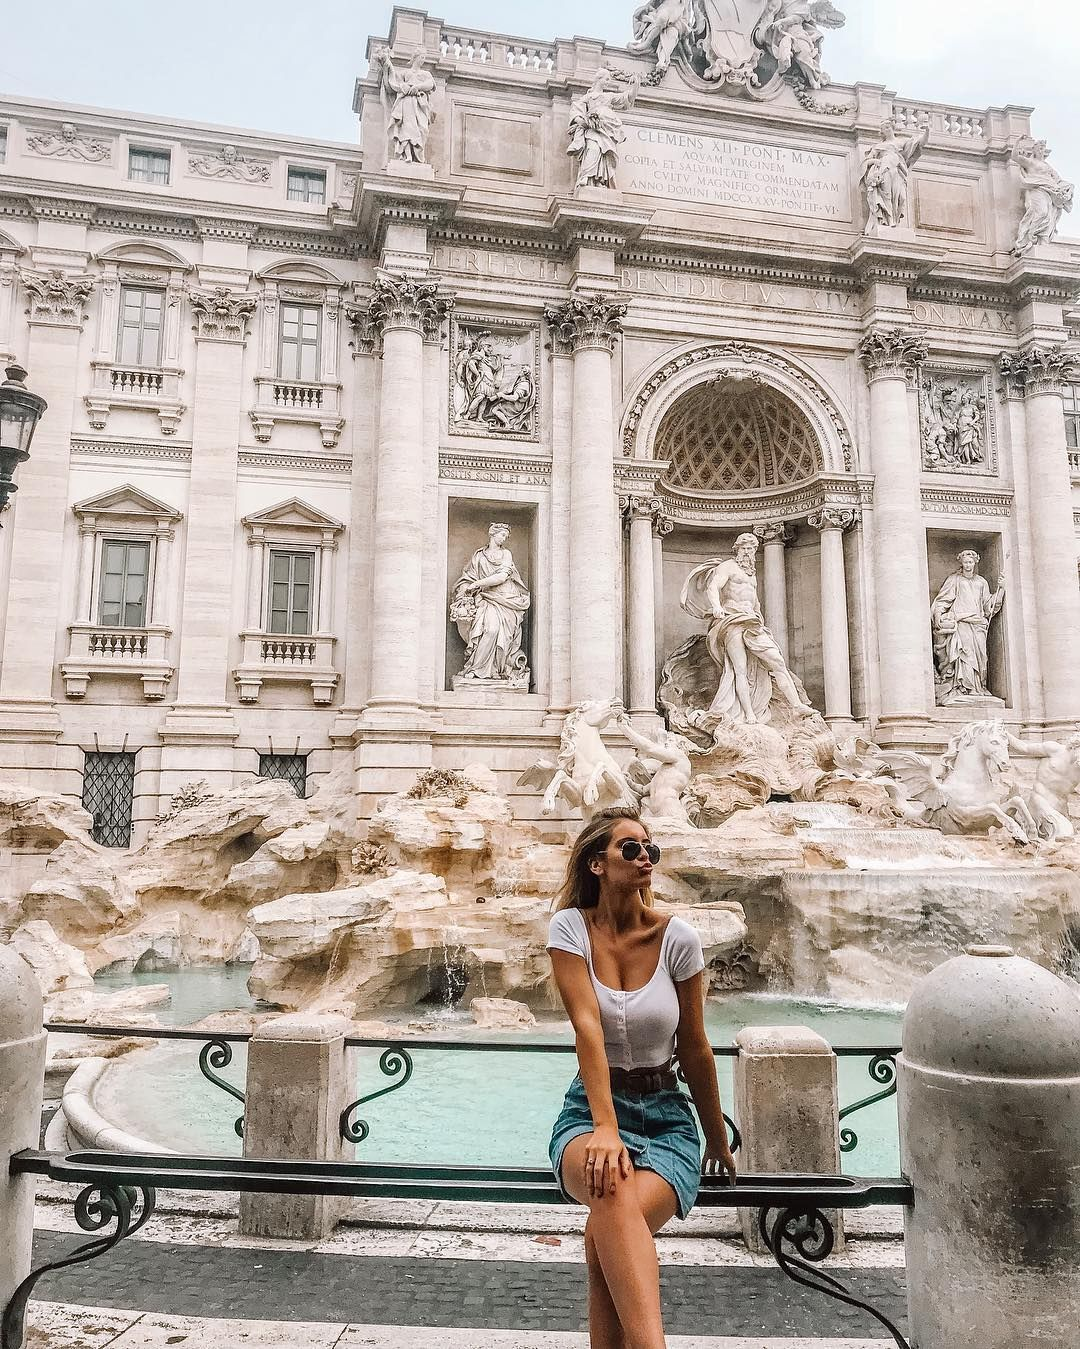 Rome Trevi Fountain Lizzy Mcguire 30 8k Followers 583 Following 811 Posts See Instagram Photos And Videos From J O S I E Josie Sanders